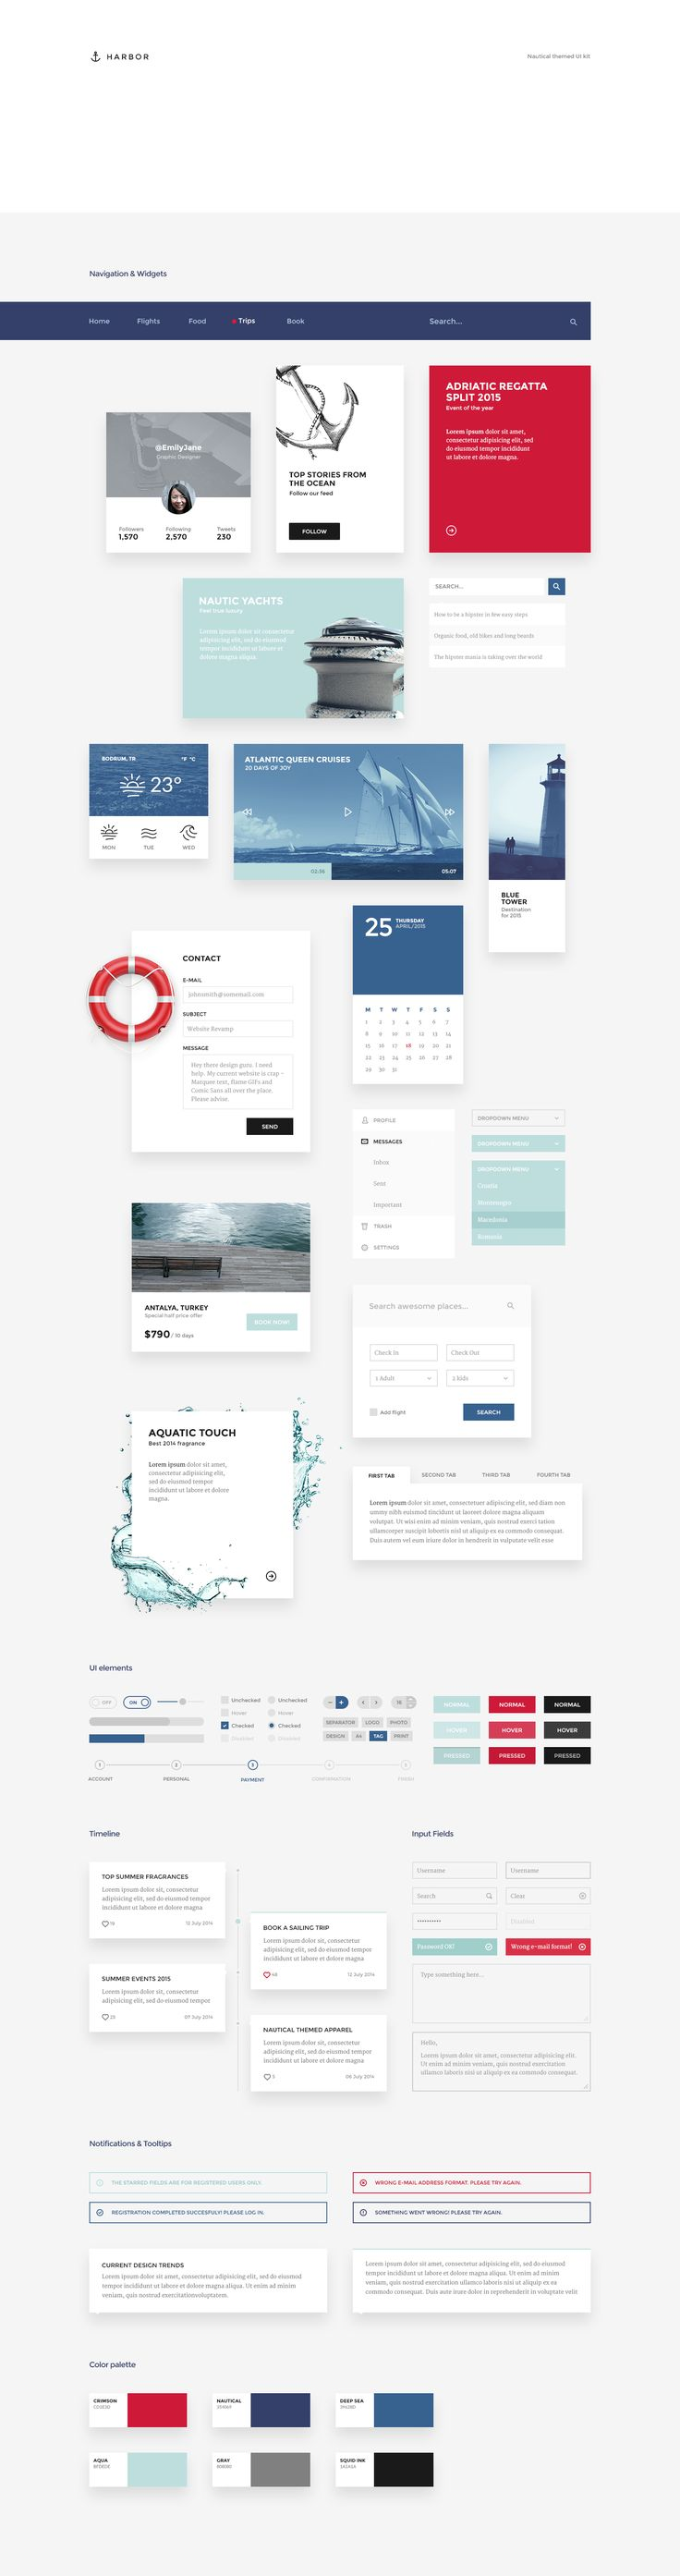 Dribbble - harbor-ui-kit-all-elements-preview.png by Erigon                                                                                                                                                     More